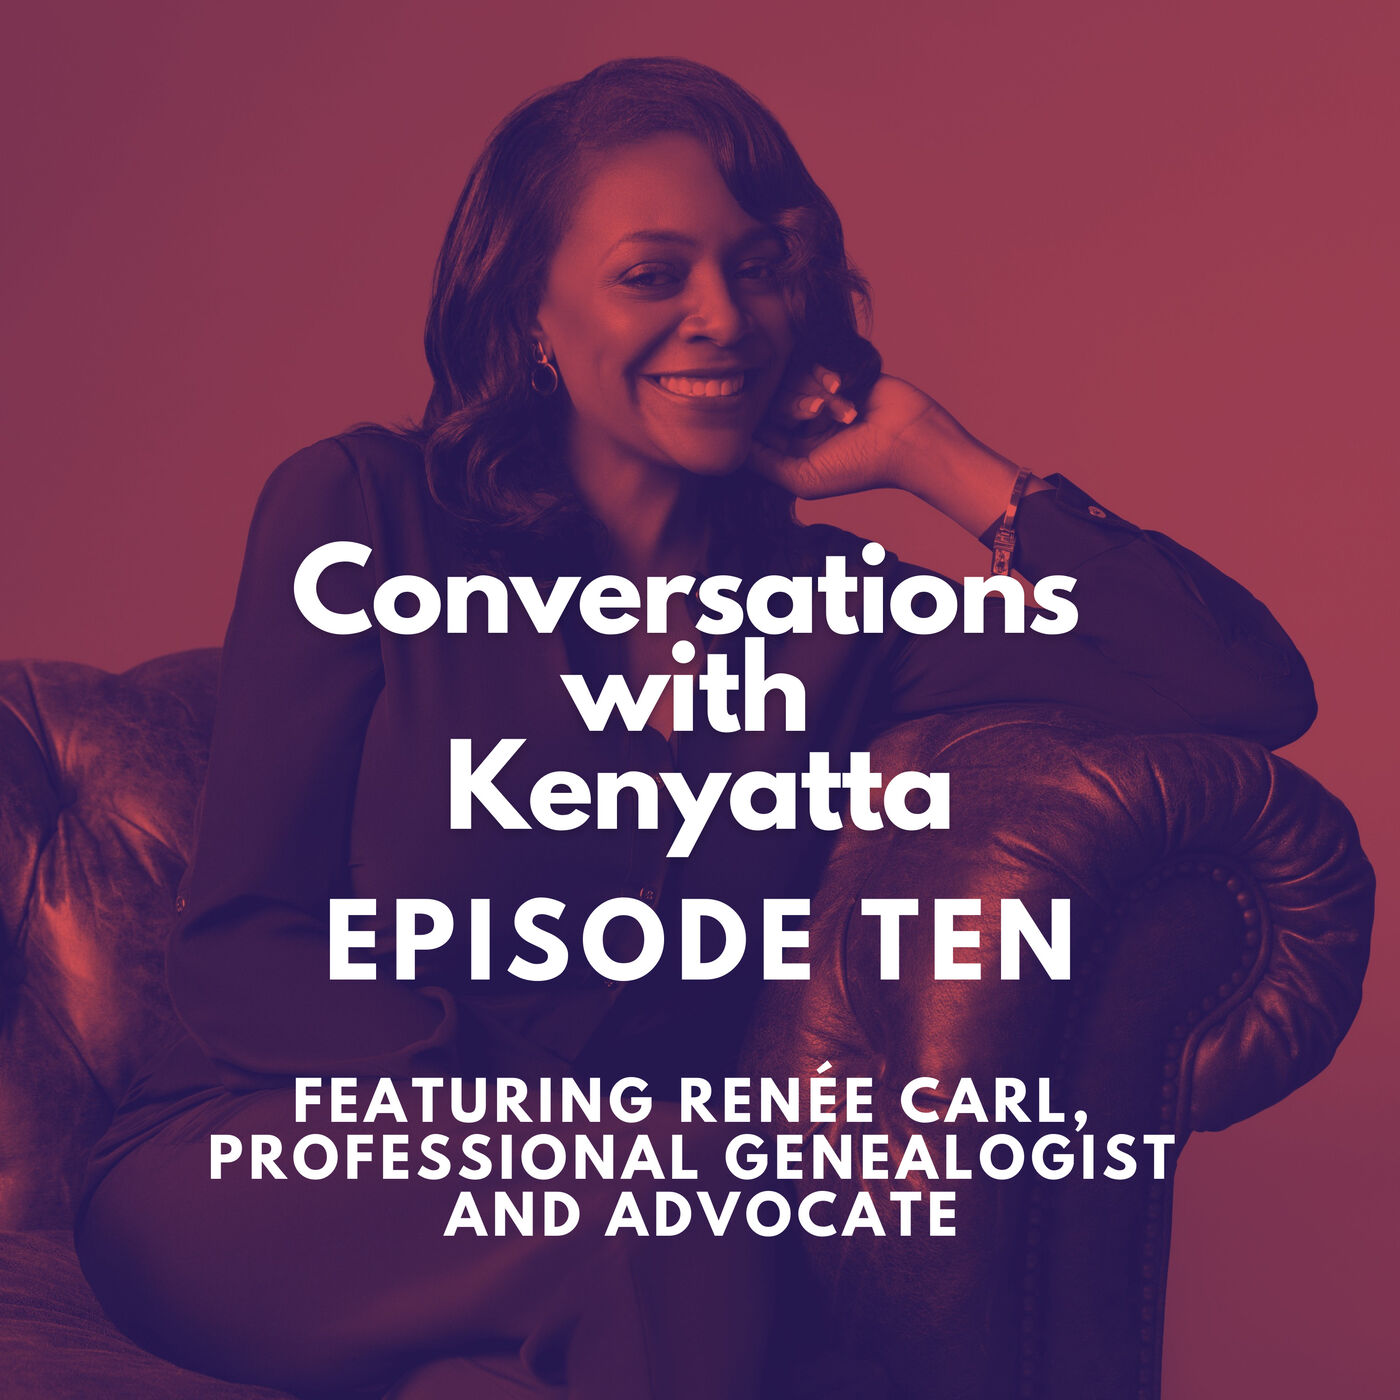 A Conversation with Renée Carl, Professional Genealogist and Advocate